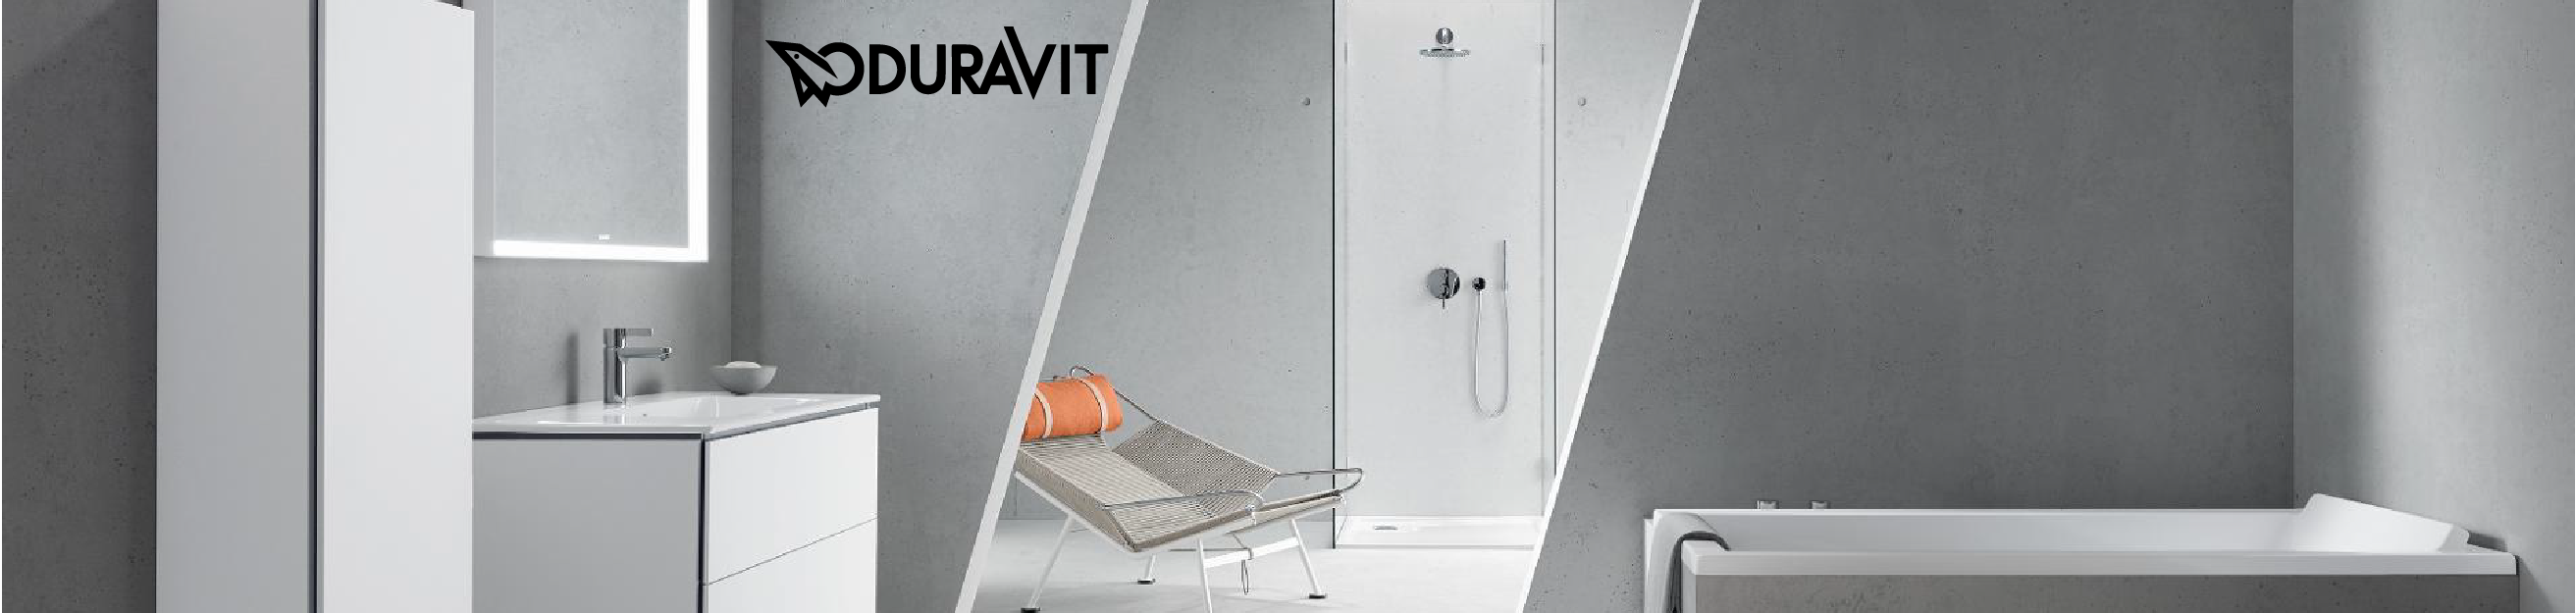 Duravit products up to 30% off at Plumbtile.com